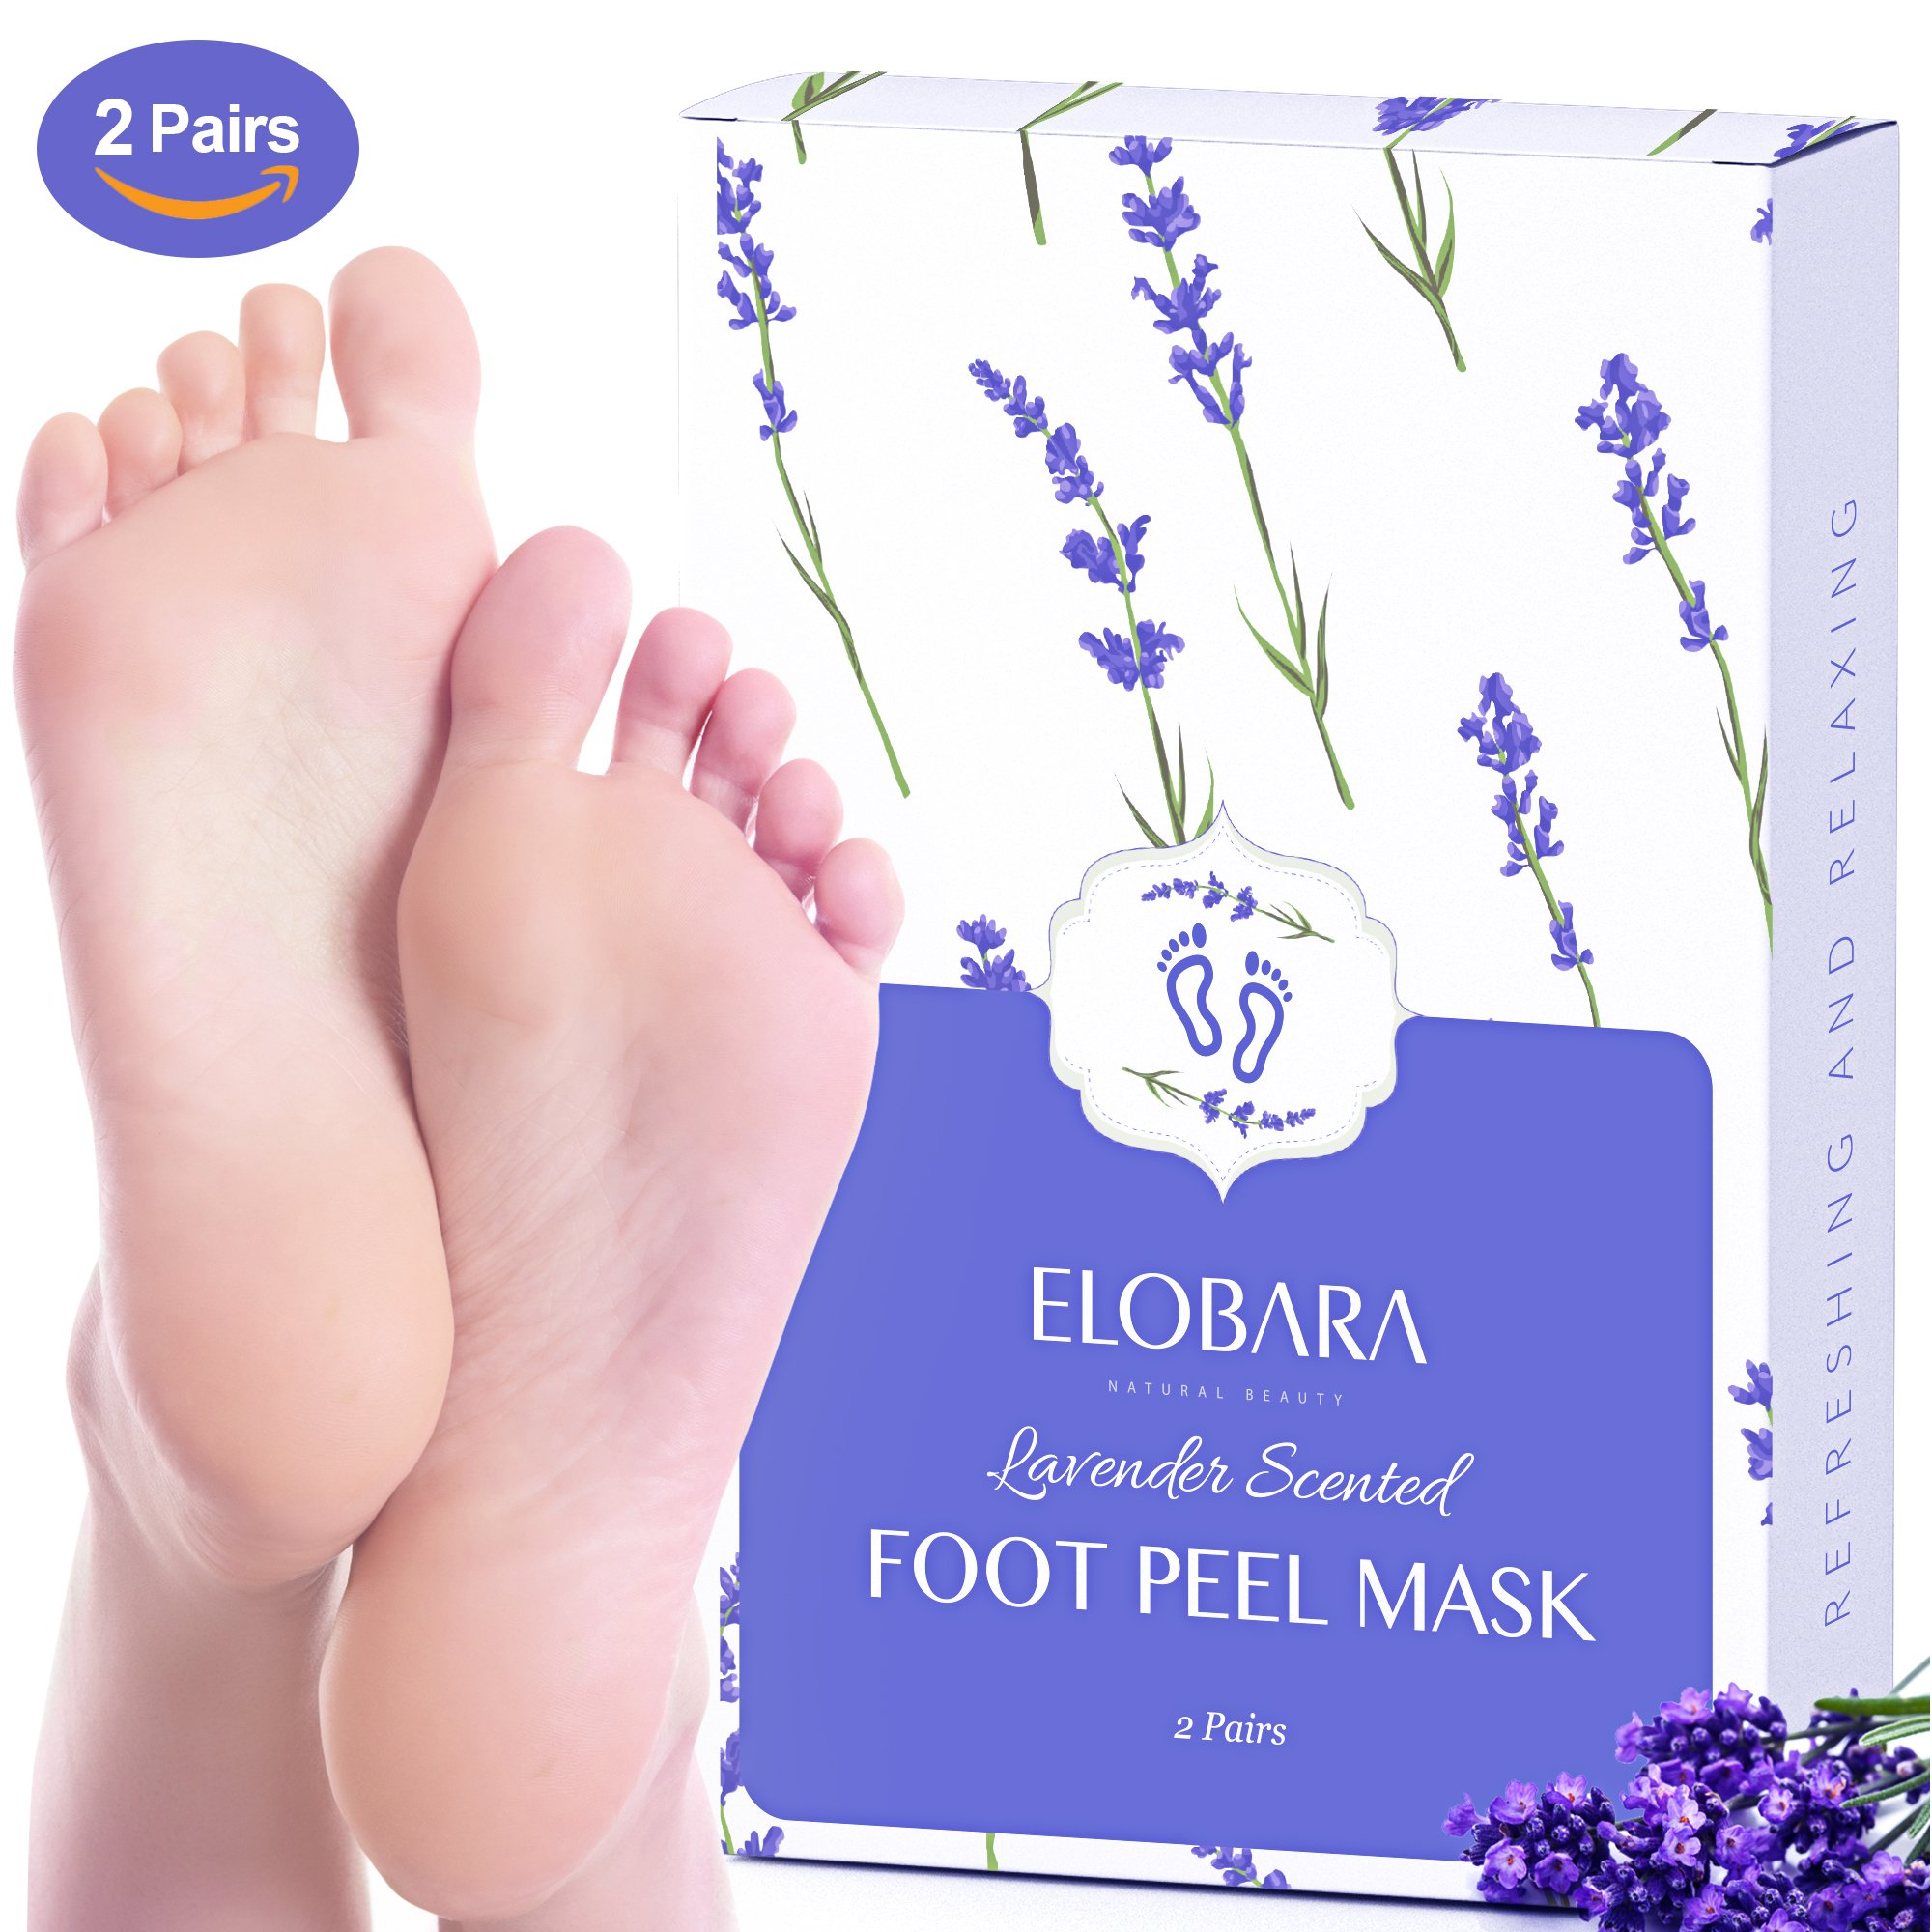 Foot Peel Mask, Exfoliating Calluses and Dead Skin for Soft Baby Feet, 2 Pairs, Repair Rough Heels Painlessly, Leave Your Feet Moisture and Smooth by Elobara (Image #1)